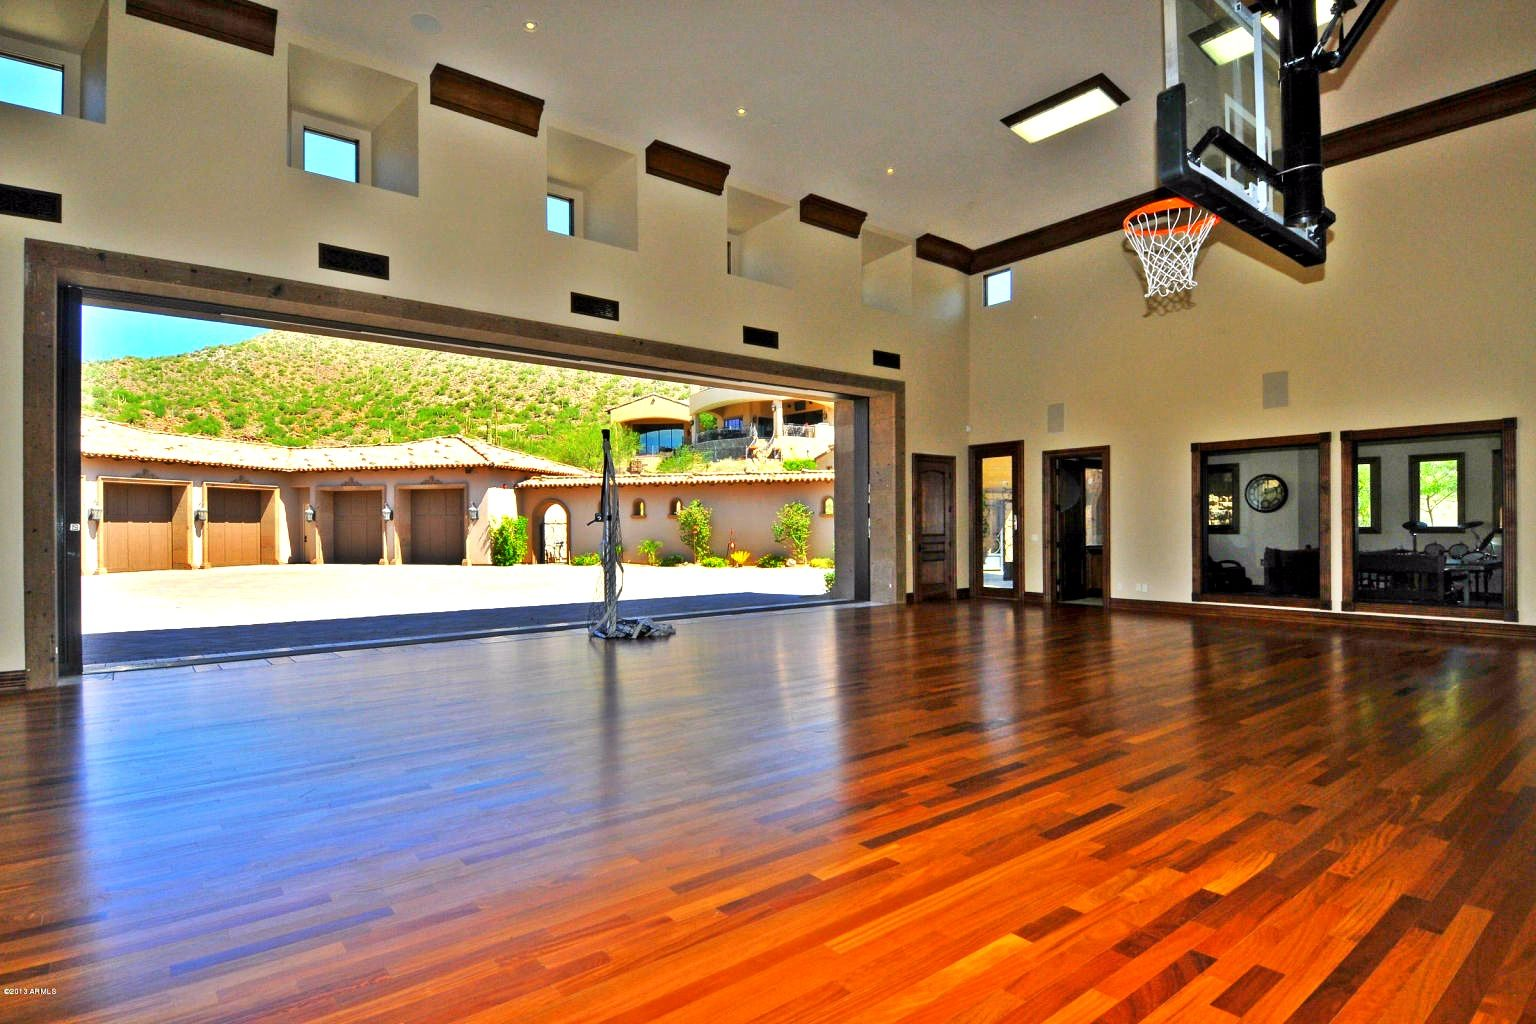 Indoor basketball court diamond point 1 las sendas for Basketball hoop inside garage